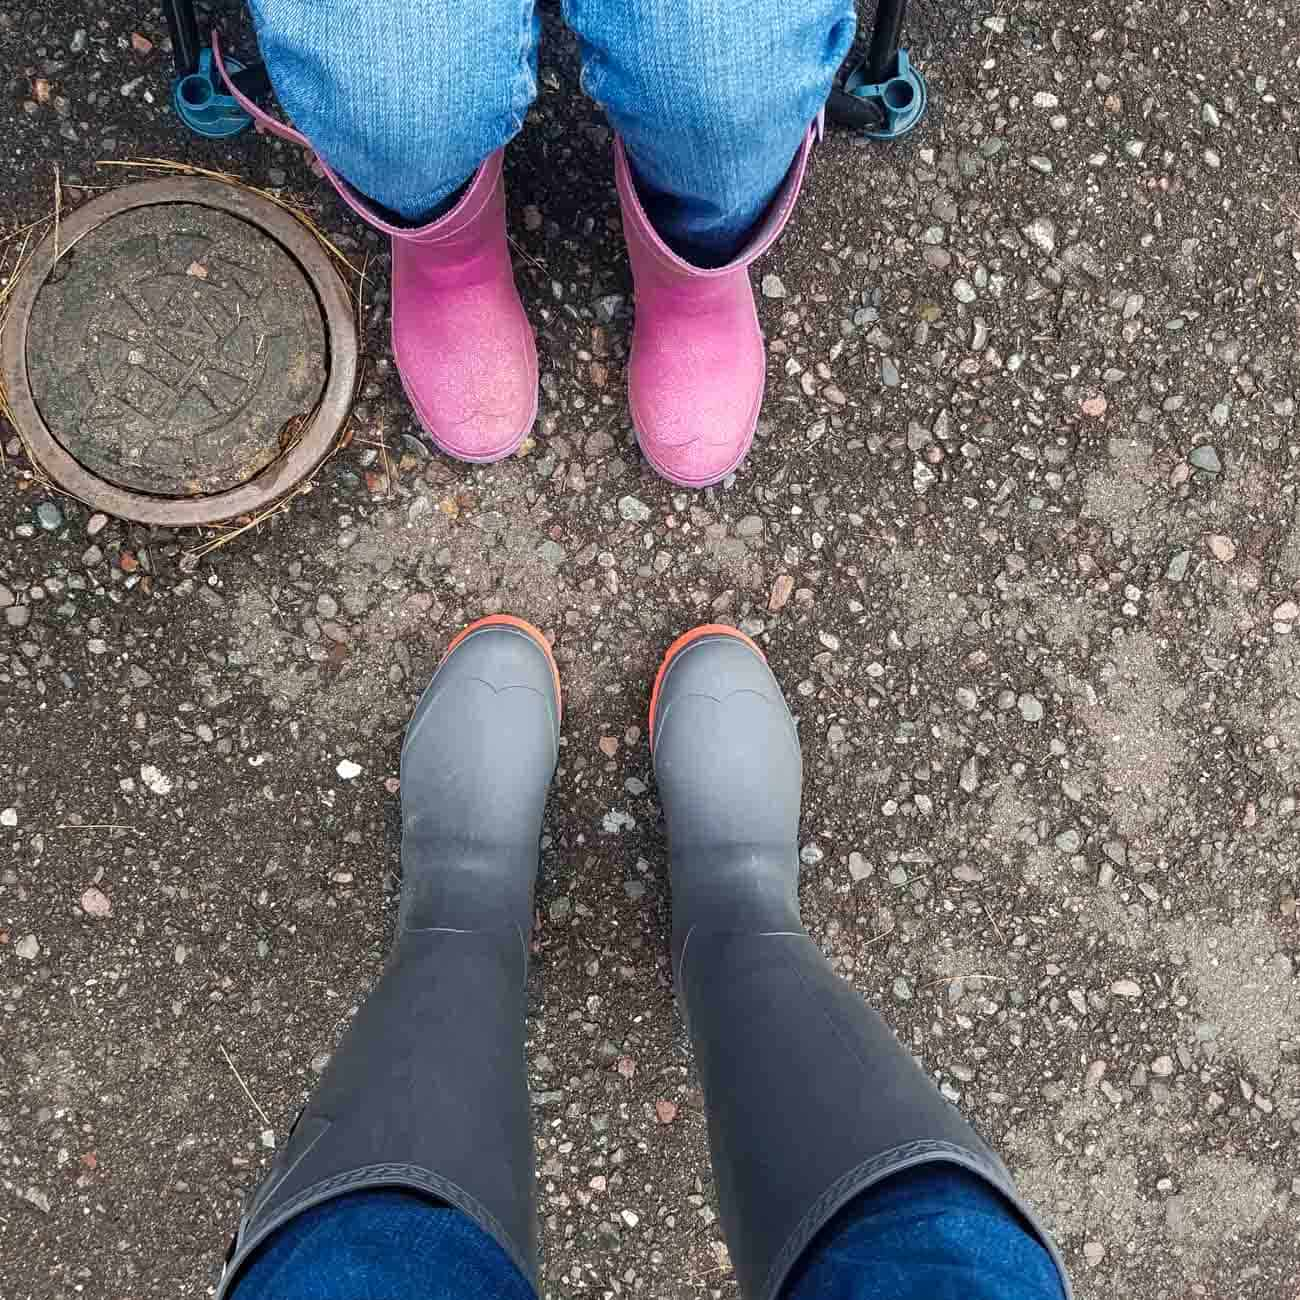 best rain boots for family mother daughter